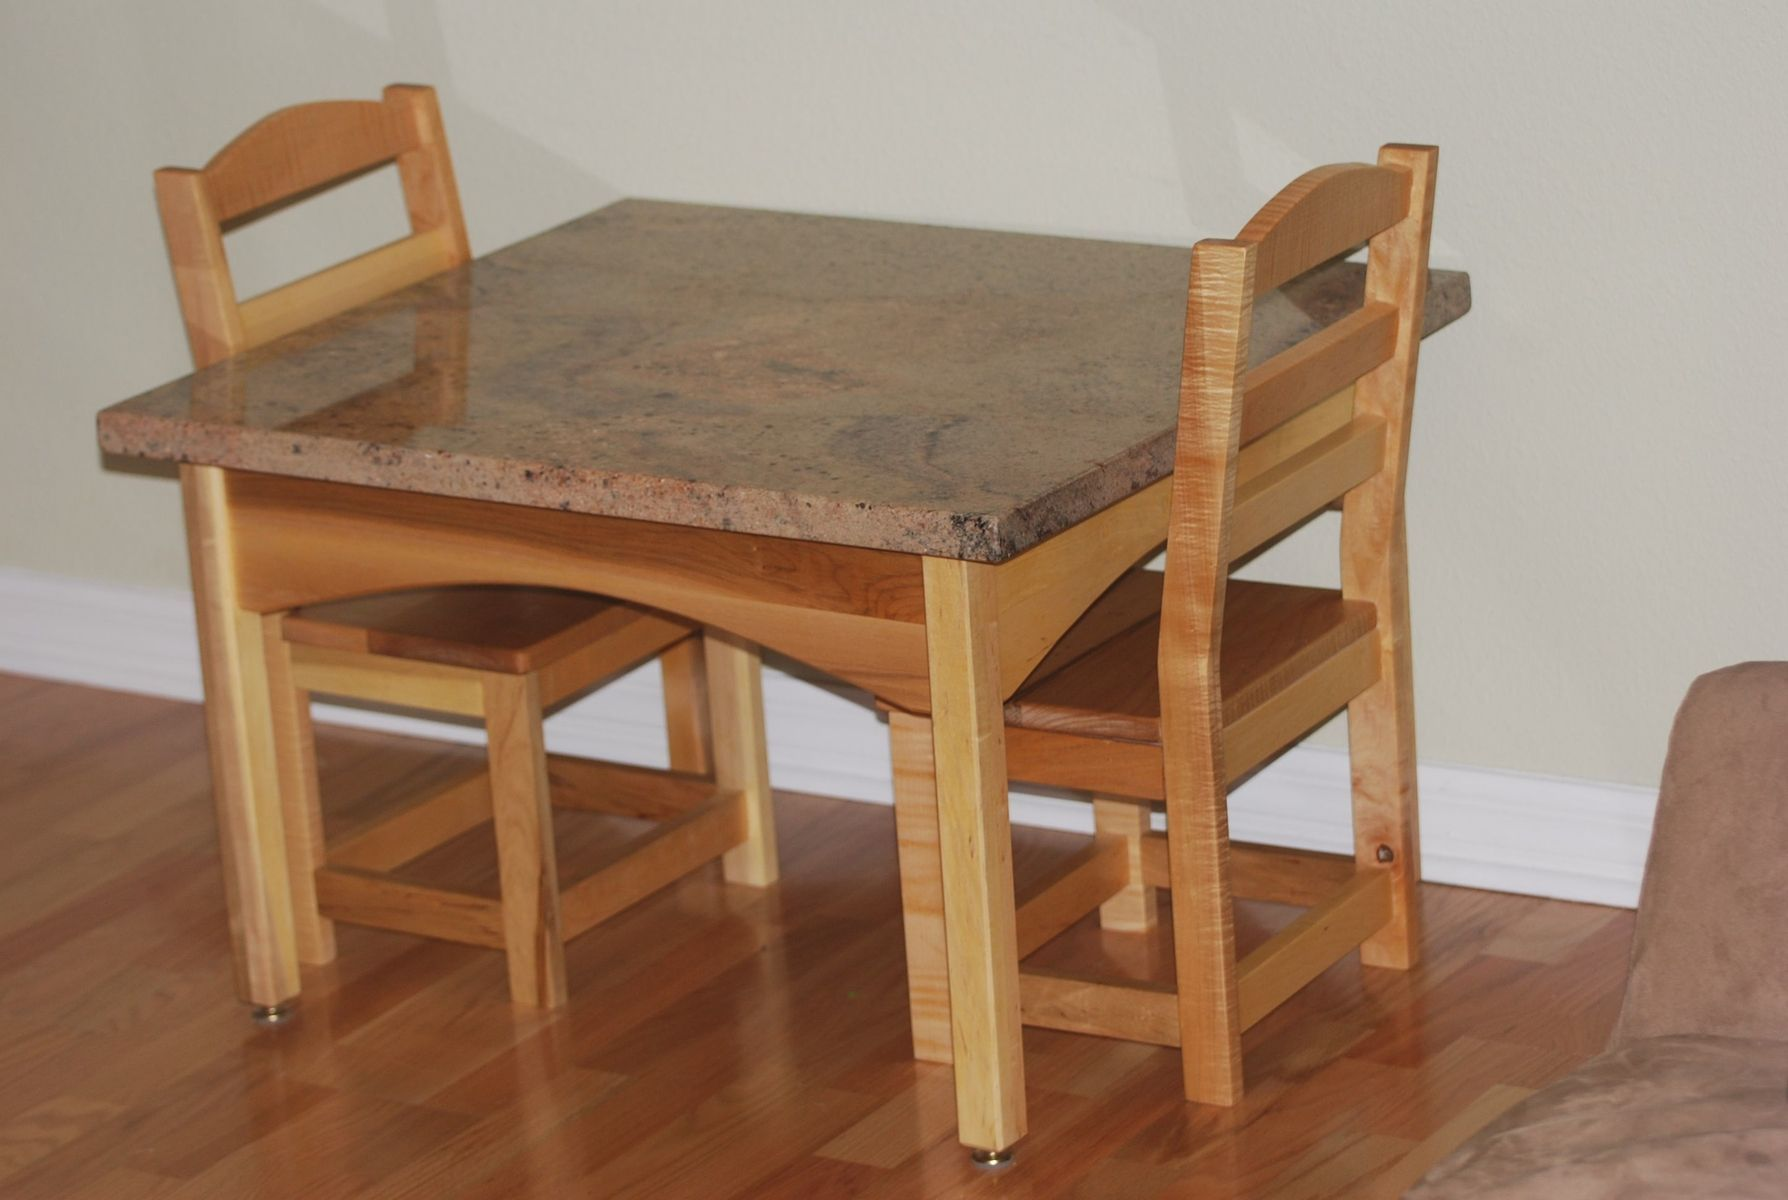 Wooden Table And Chairs For Kids Childrens Kids Kids Wooden Table Wooden Childrens Table Kids Table And Chairs